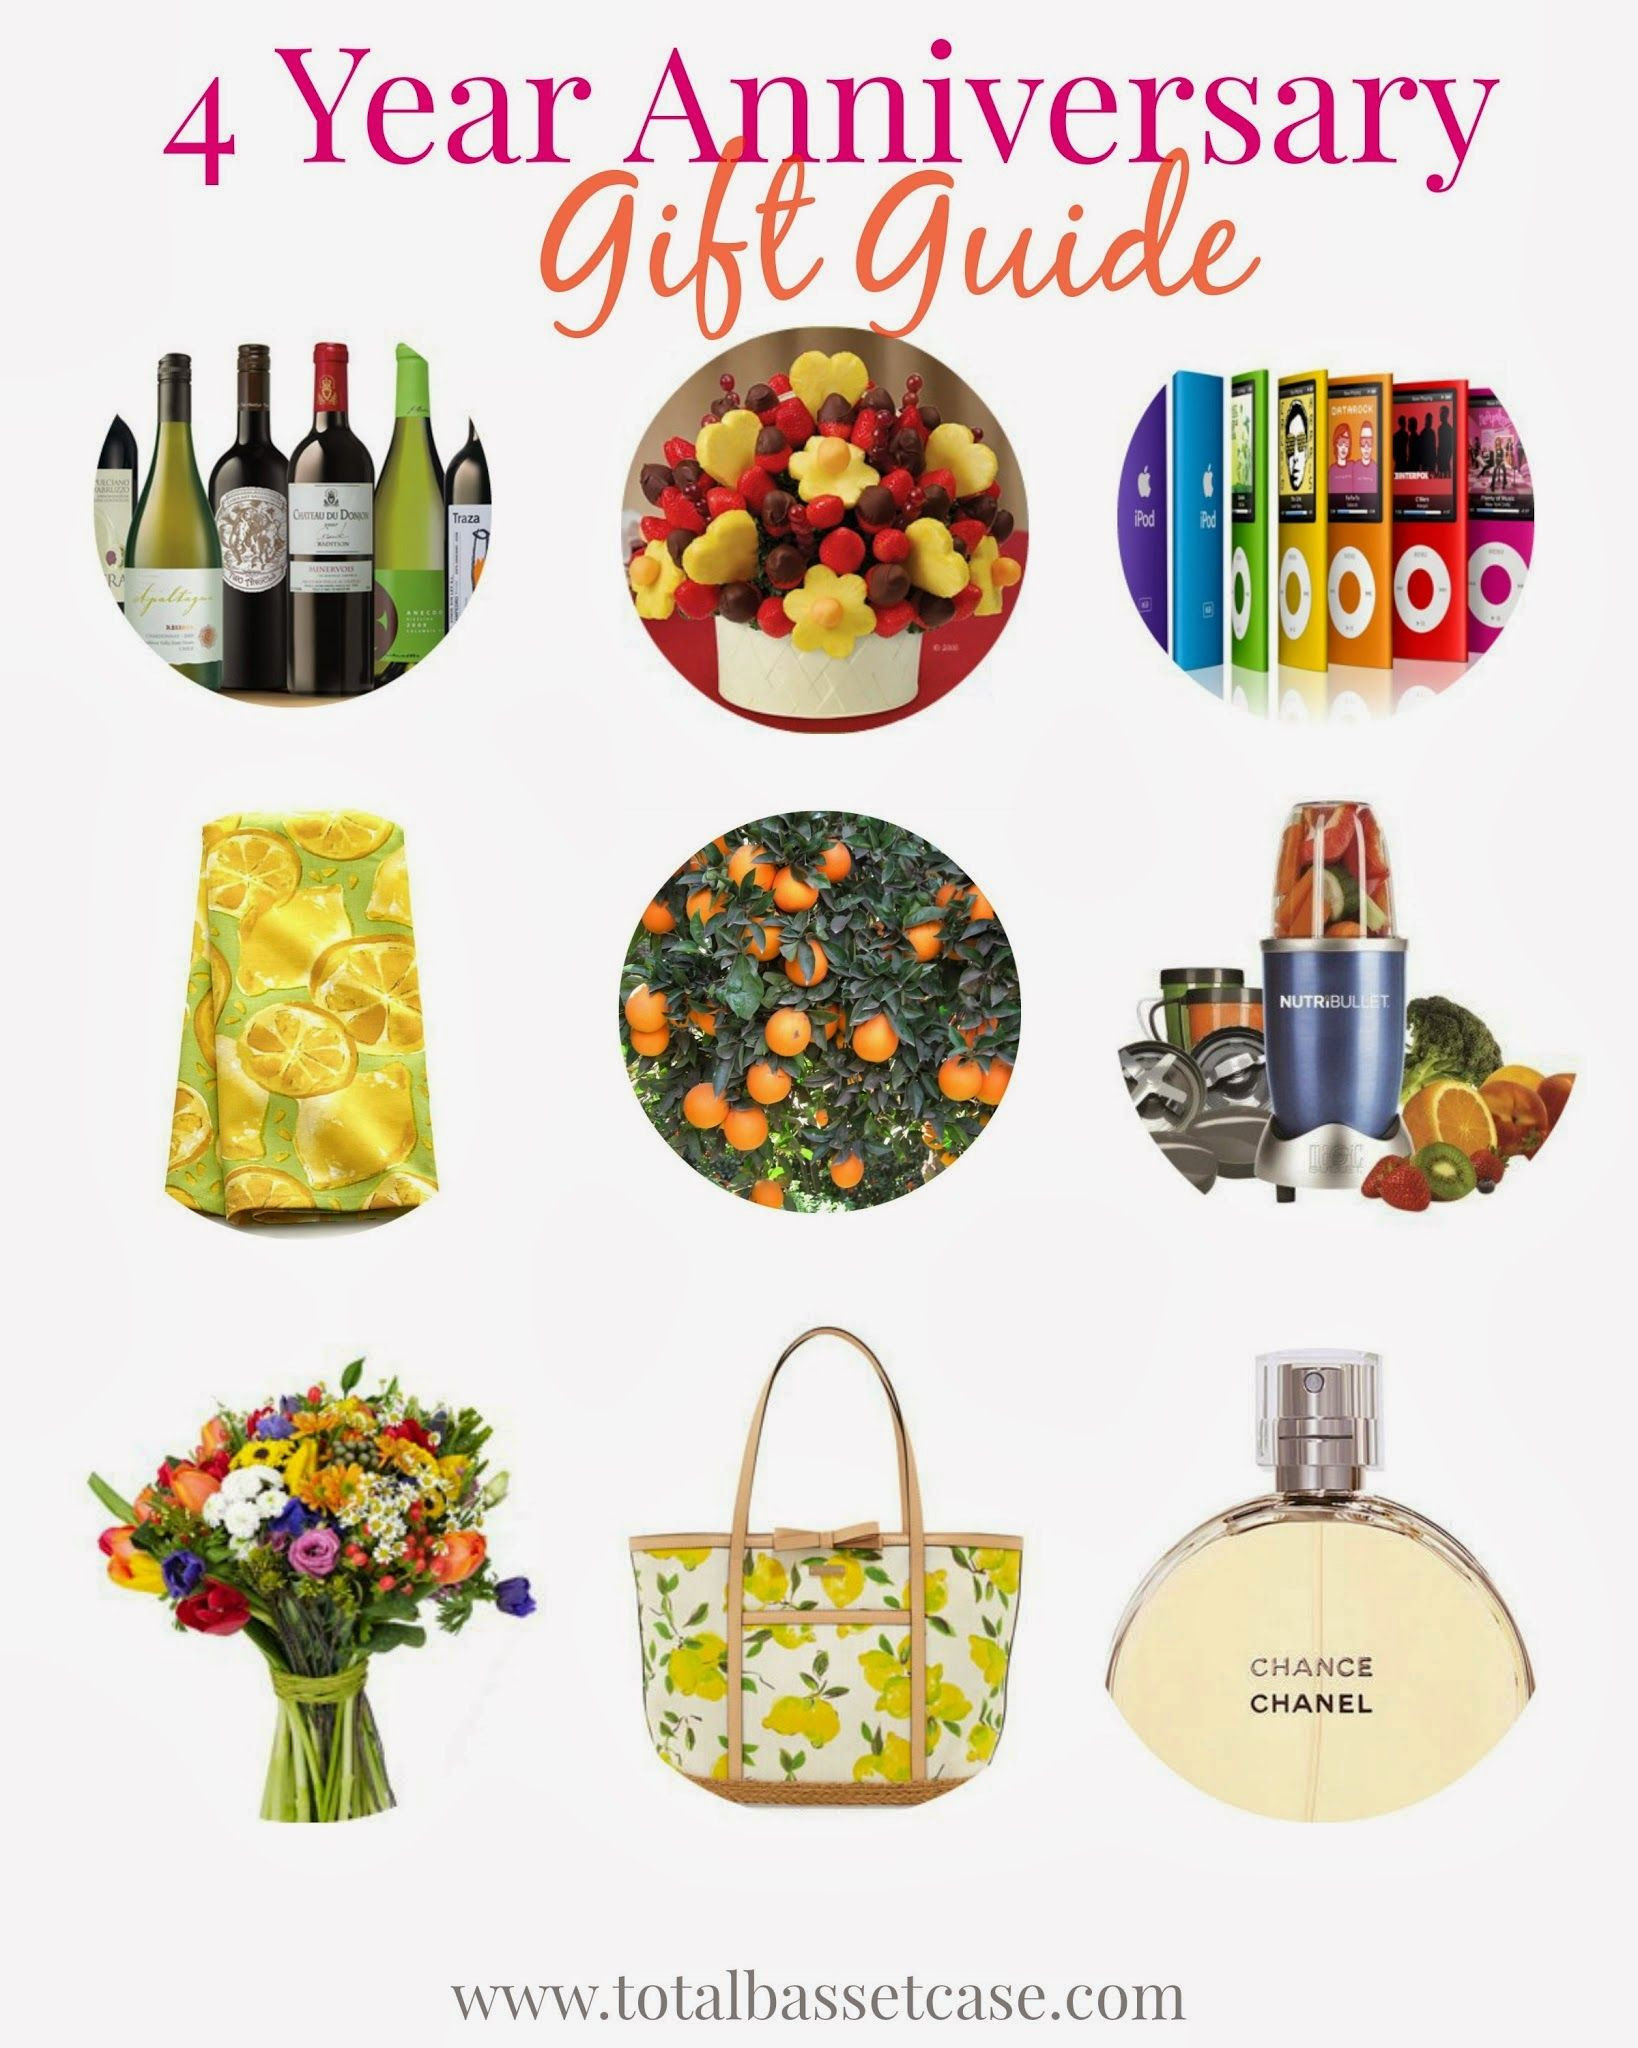 4 Year Wedding Anniversary Gift Ideas For Him  Total Basset Case Fruit & Flowers 4 Year Anniversary